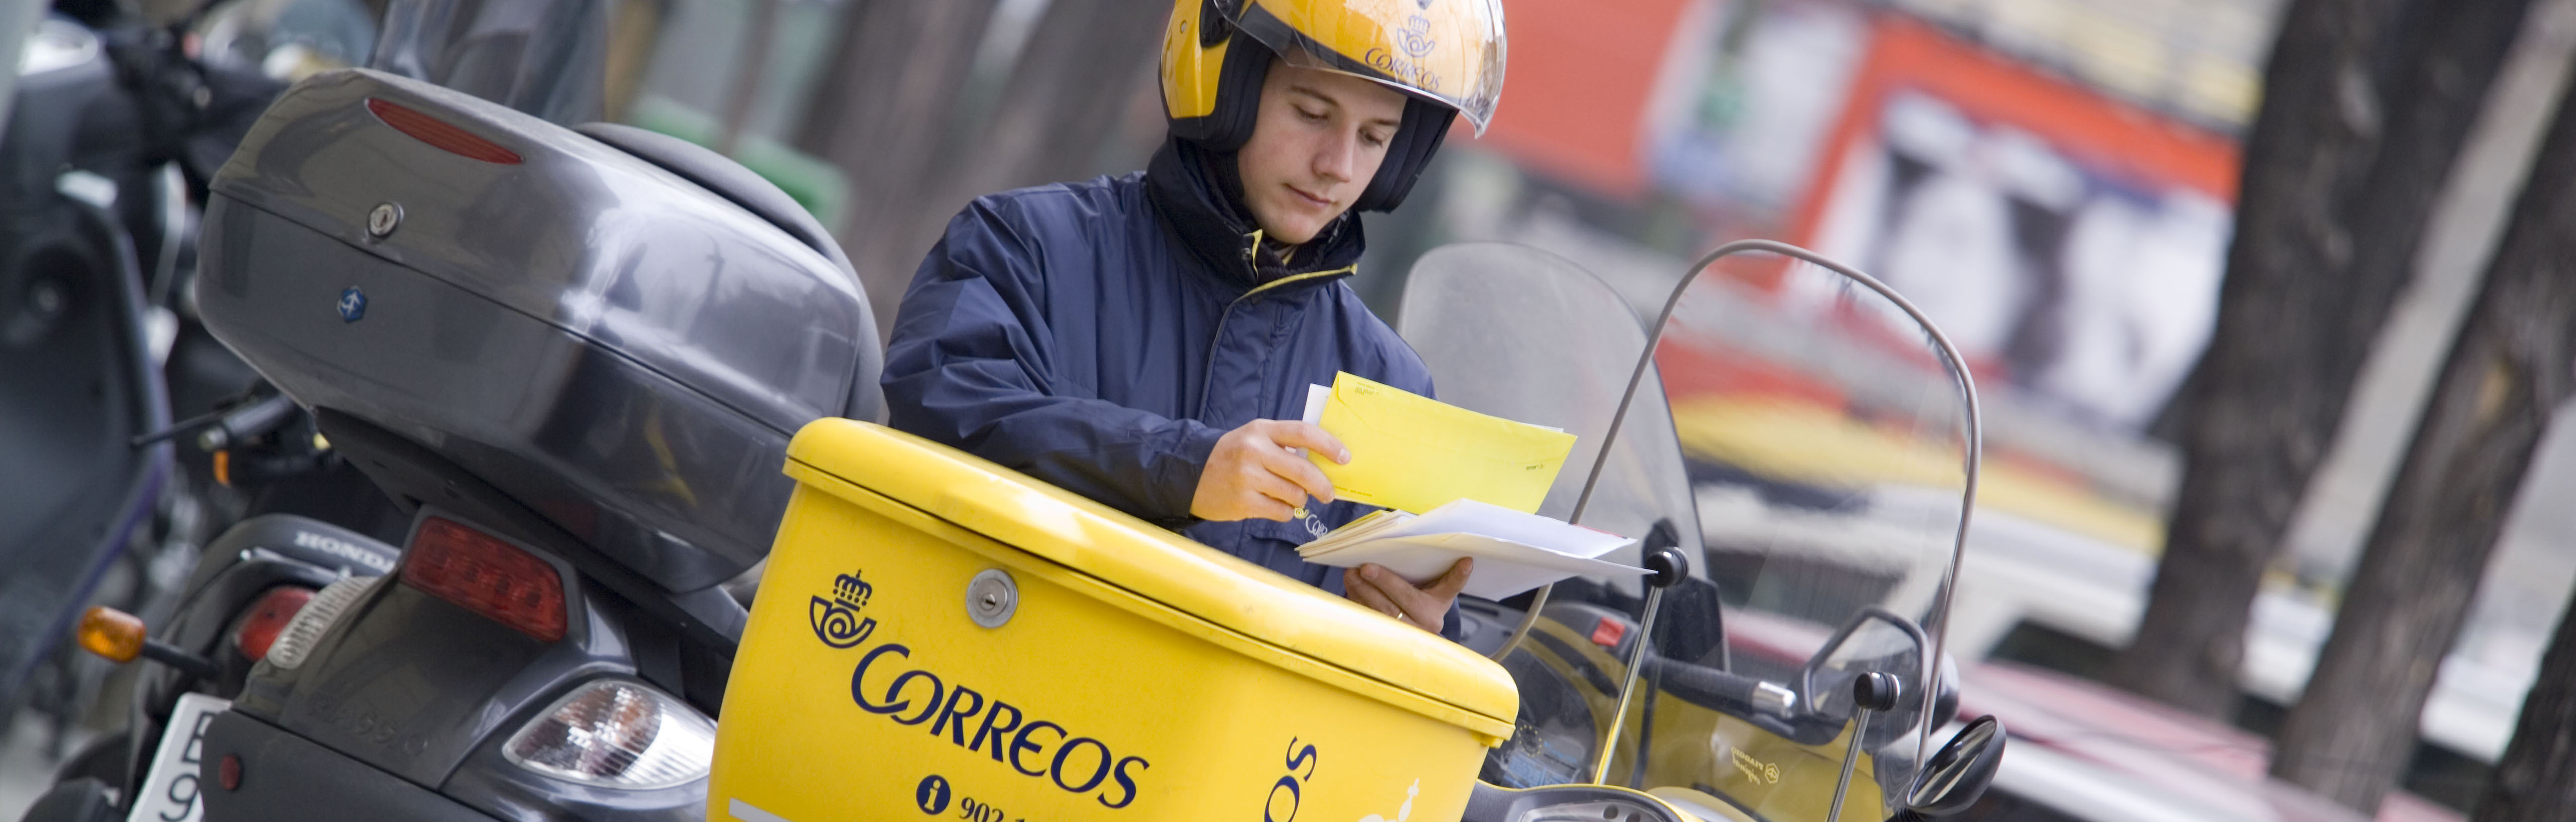 CORREOS begins its international expansion in the Iberian Peninsula and Southeast Asia